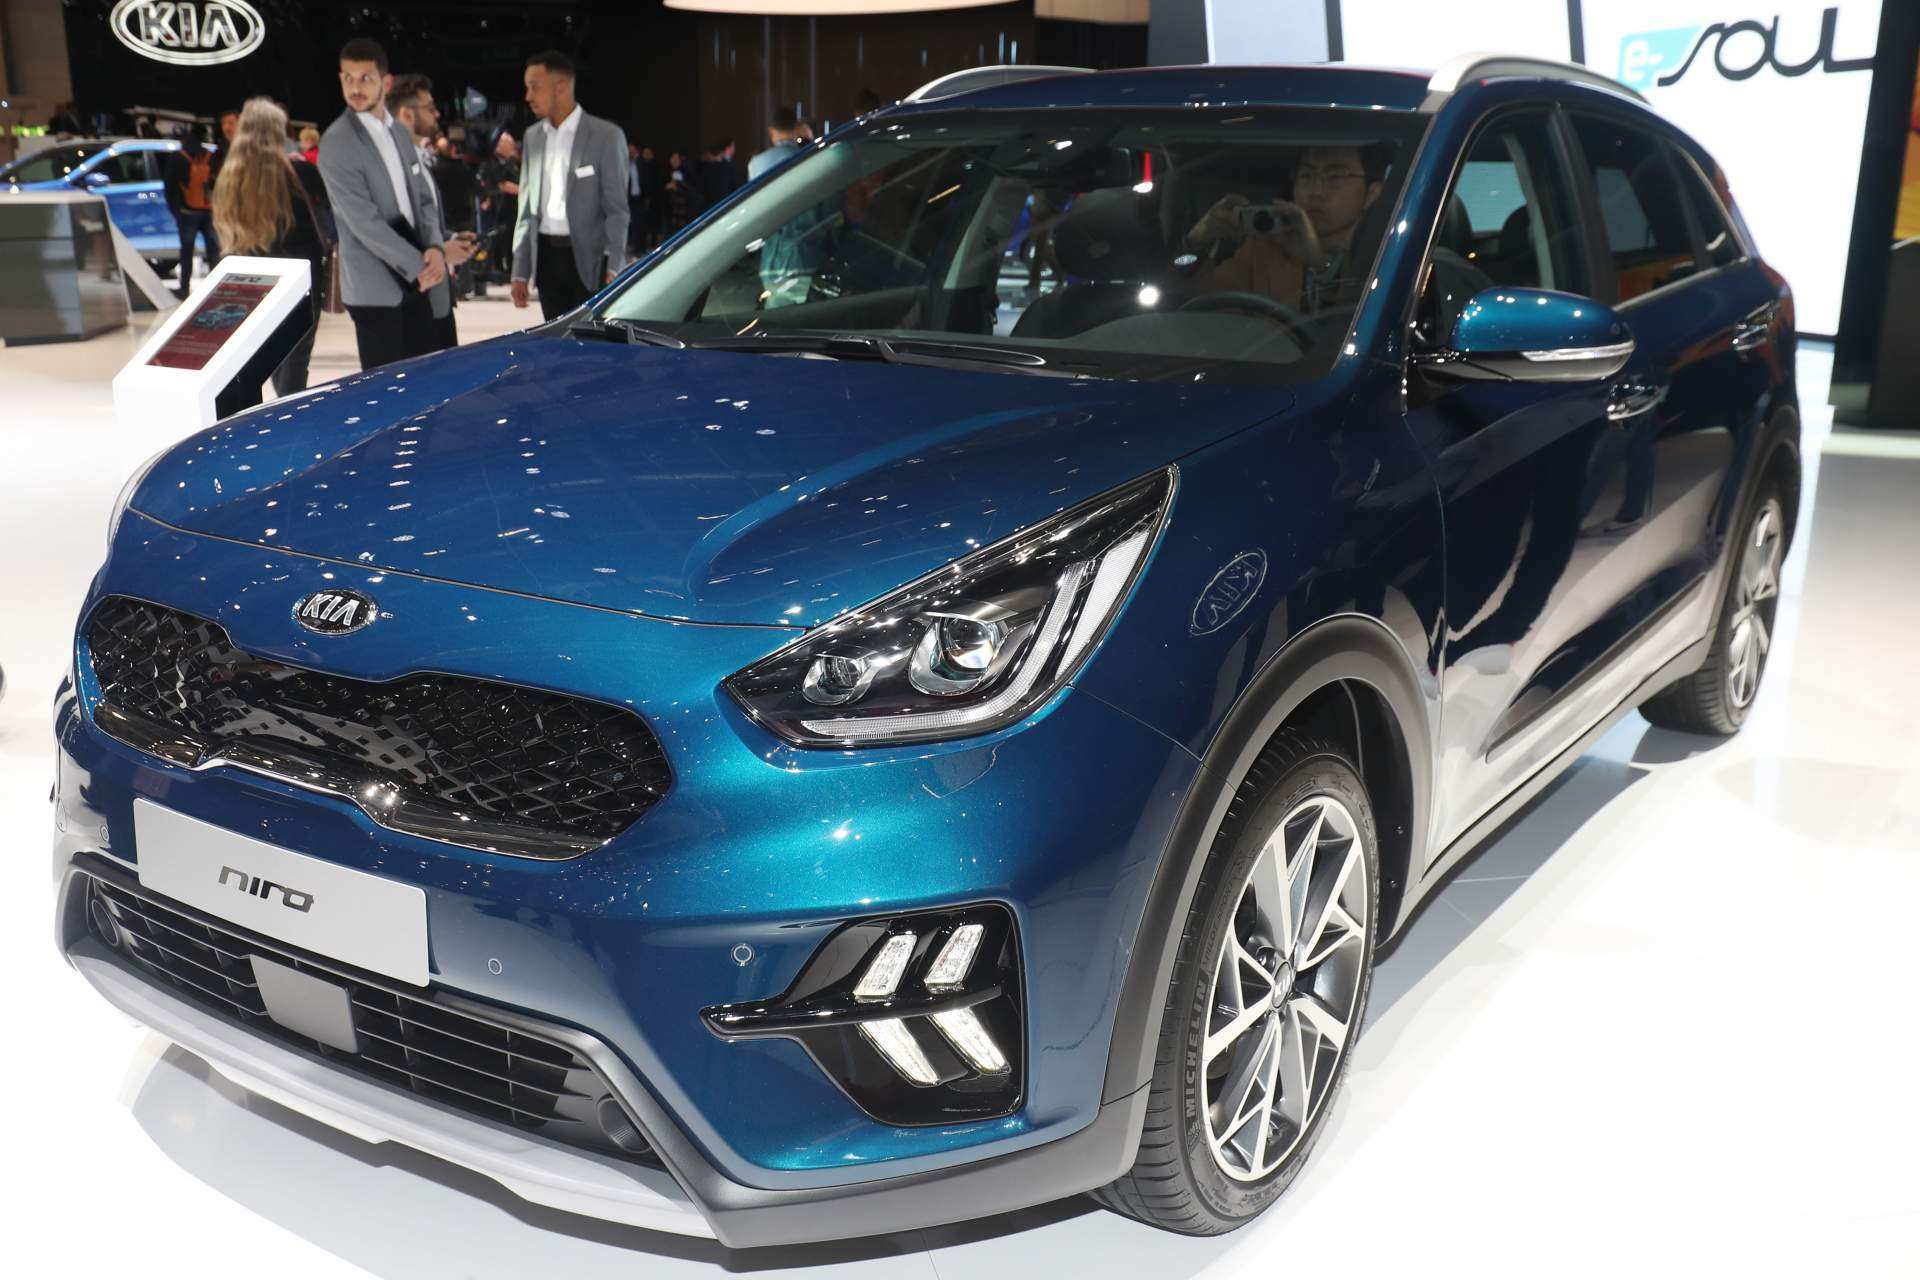 77 The Best 2019 Kia Niro New Model And Performance